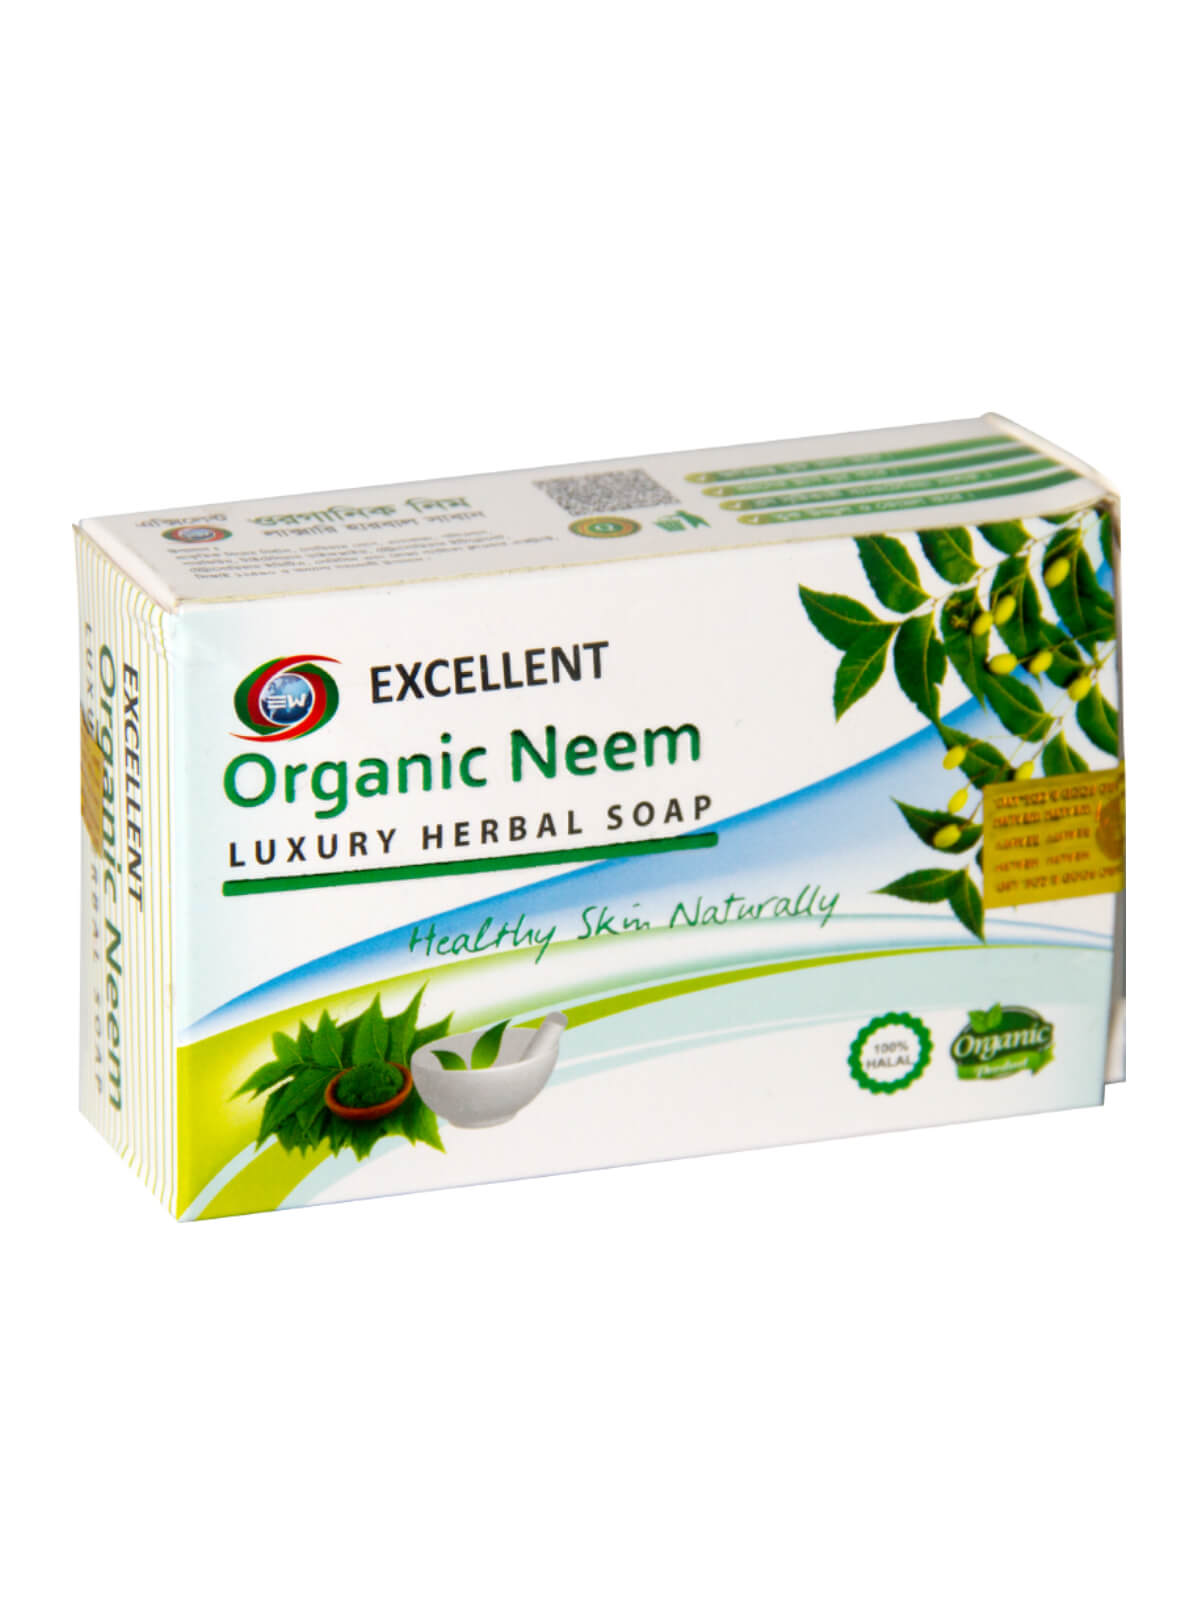 Organic Neem Luxury Herbal Soap